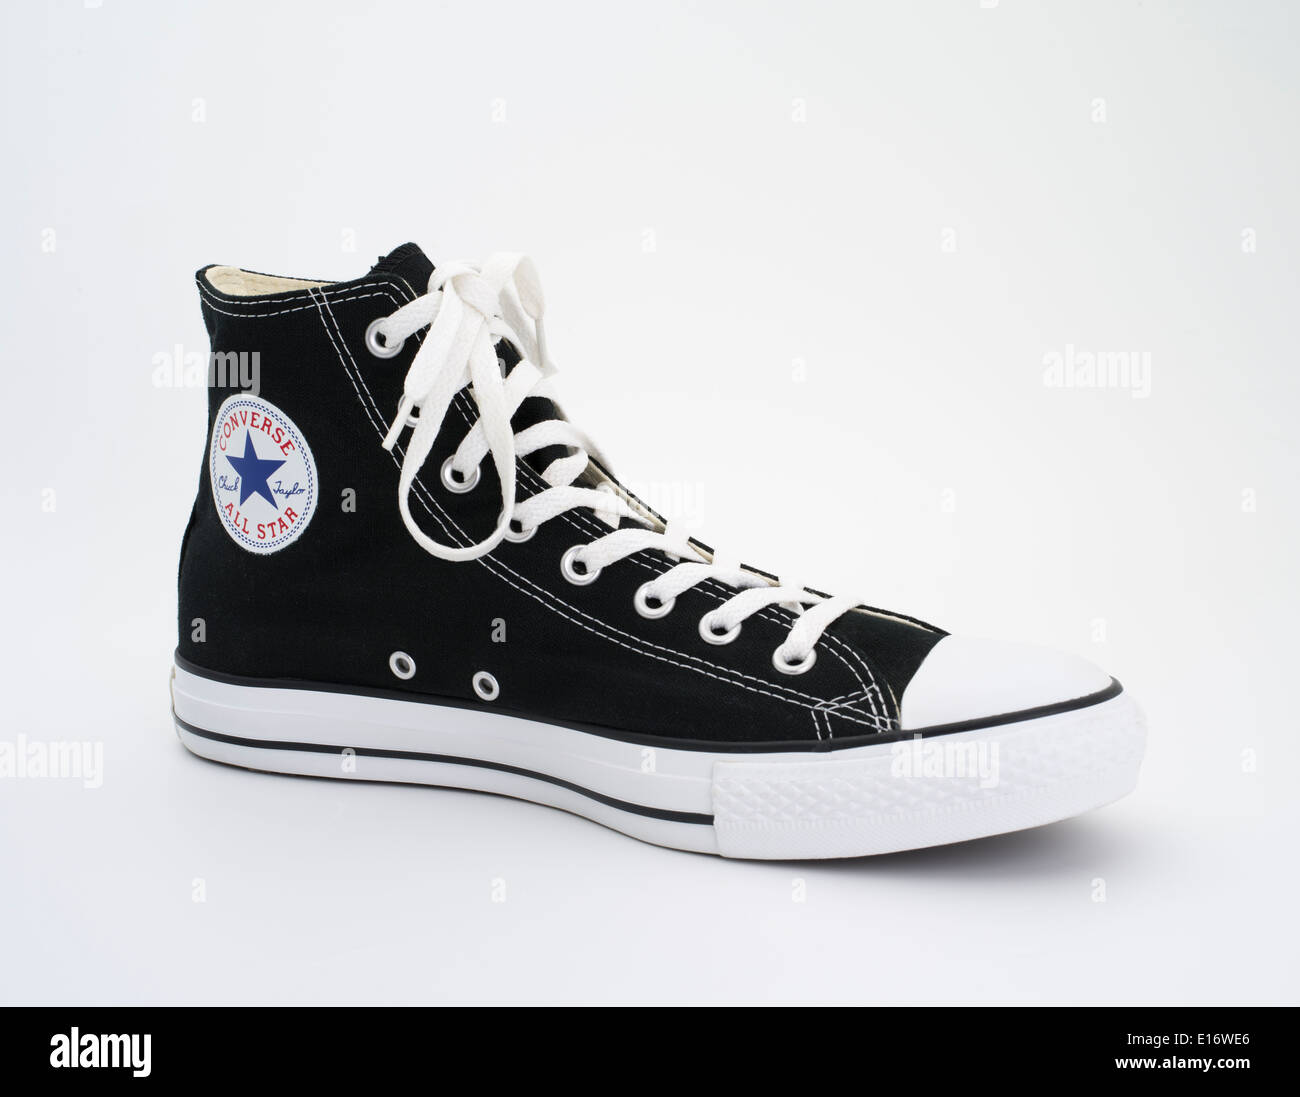 a261d6c2bcb9 Converse All Star Black and White Chuck Taylor - Chuck Taylor All-Stars  canvas and